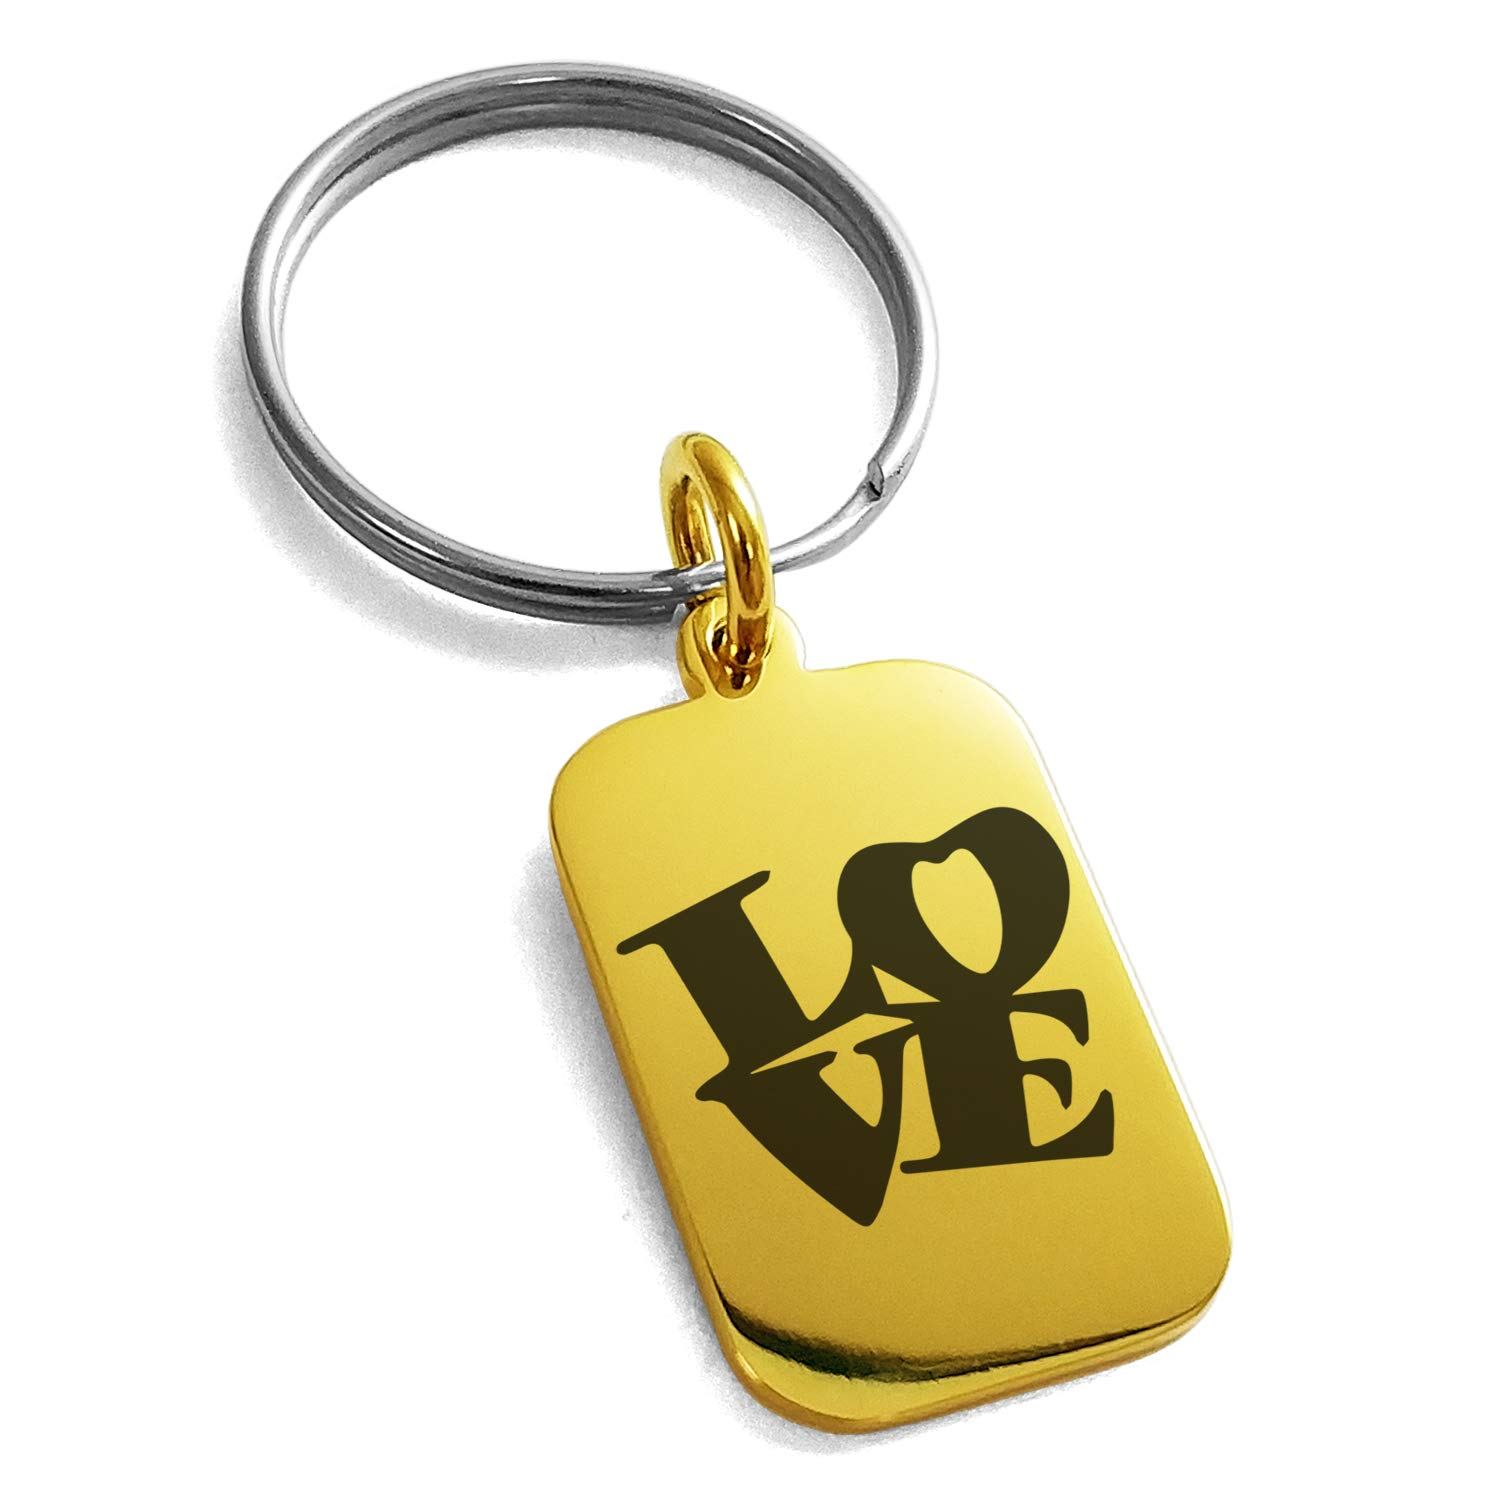 Tioneer Gold Plated Stainless Steel Love so Iconic Engraved Small Rectangle Dog Tag Charm Keychain Keyring